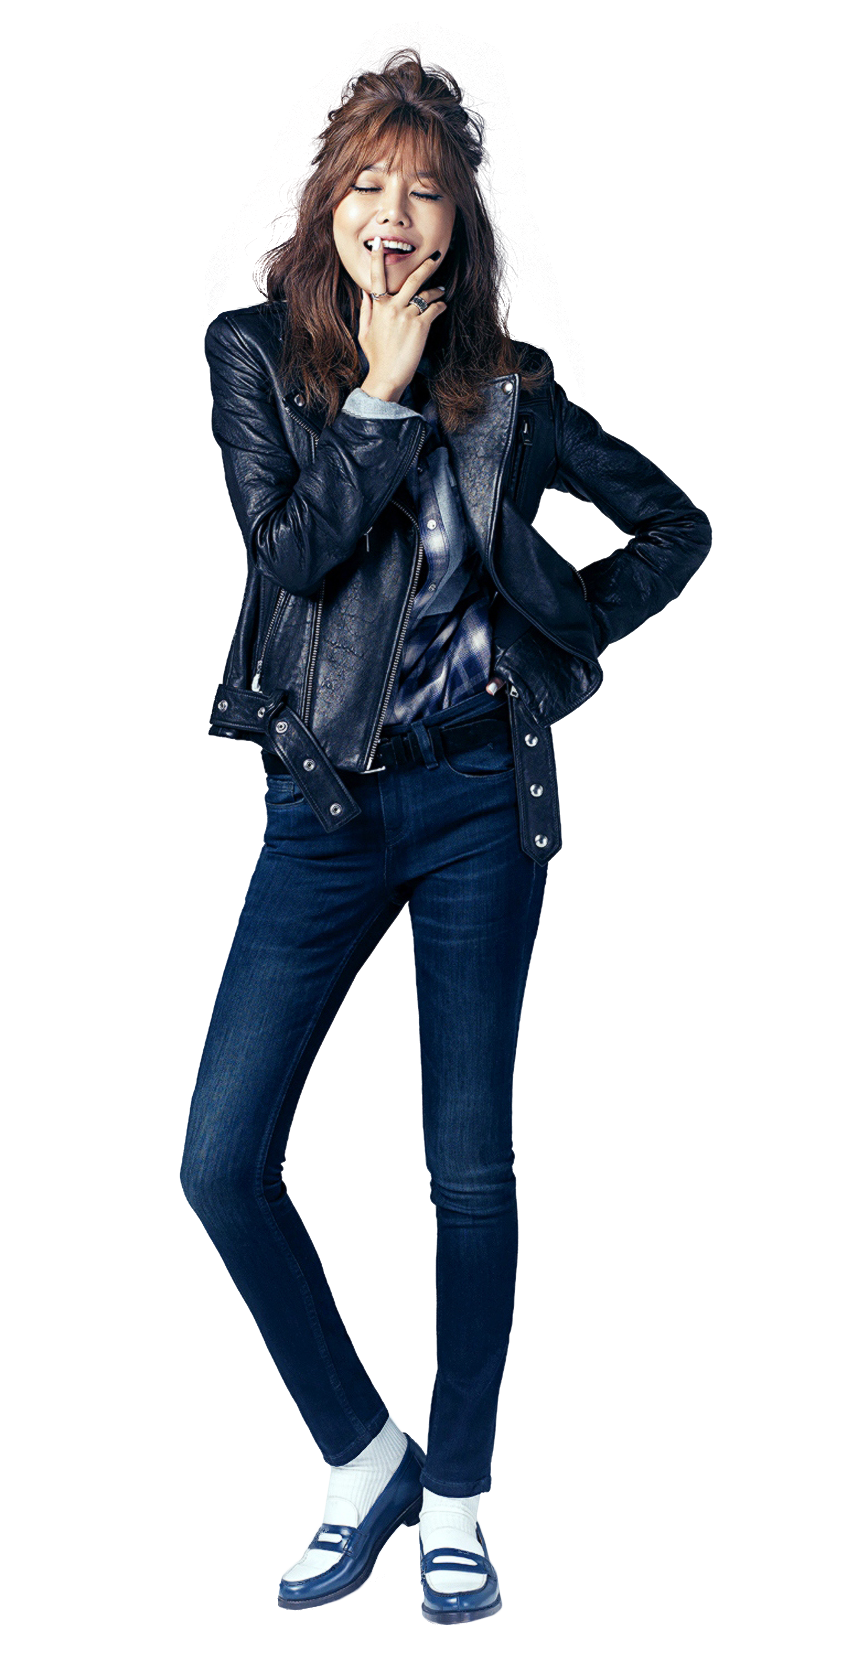 Sooyoungpng1.png